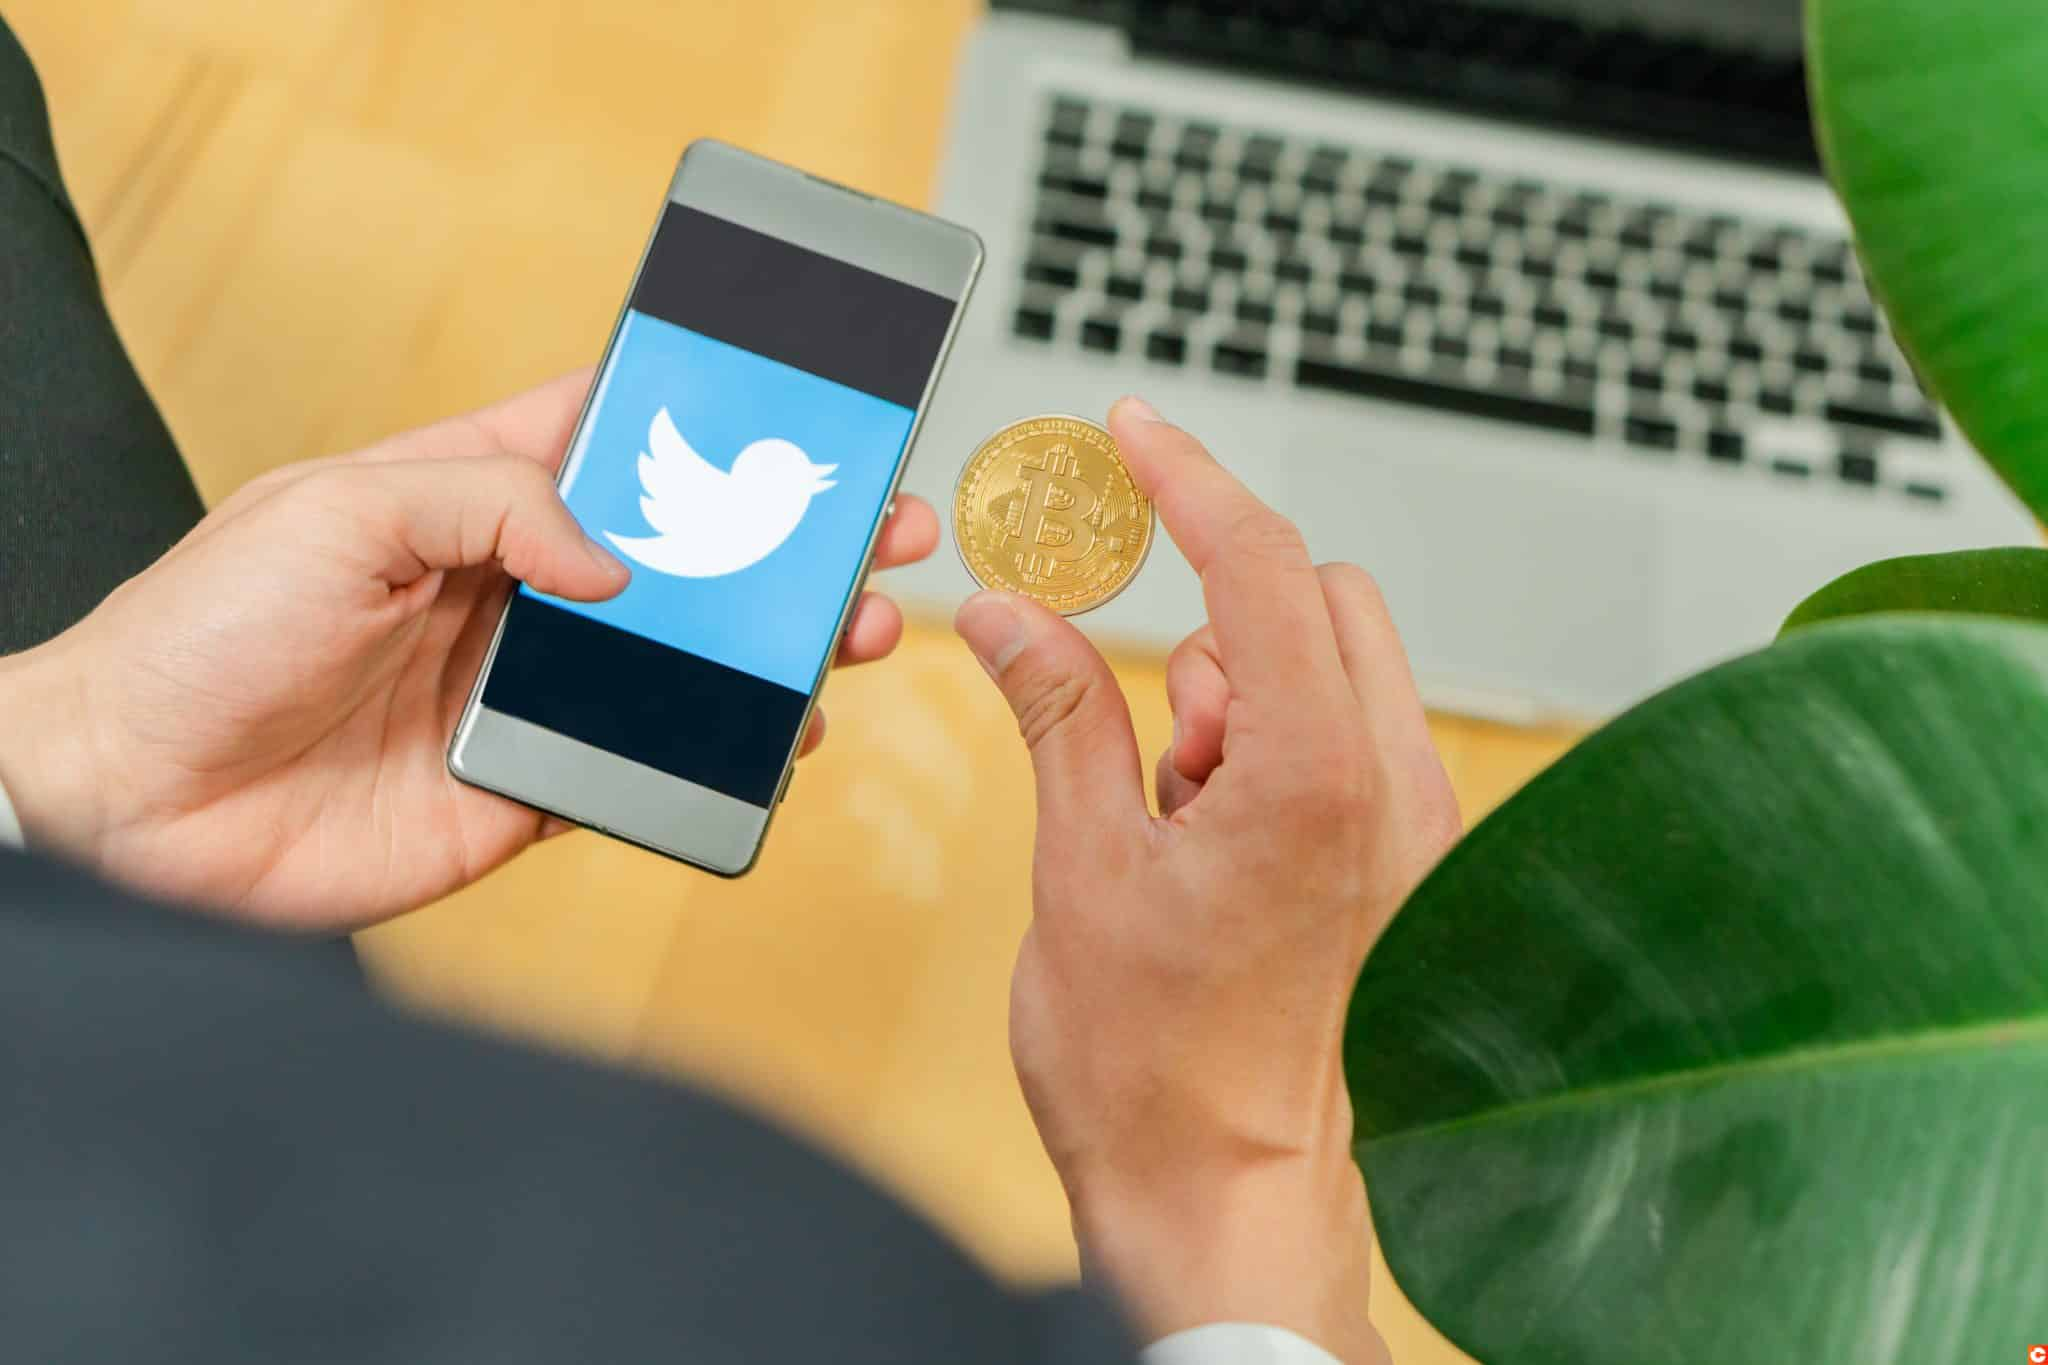 Ljubljana, Slovenia 29.4.2019: Businessman holding mobile smartphone with opened twitter logo and Bitcoin coin on a office desk